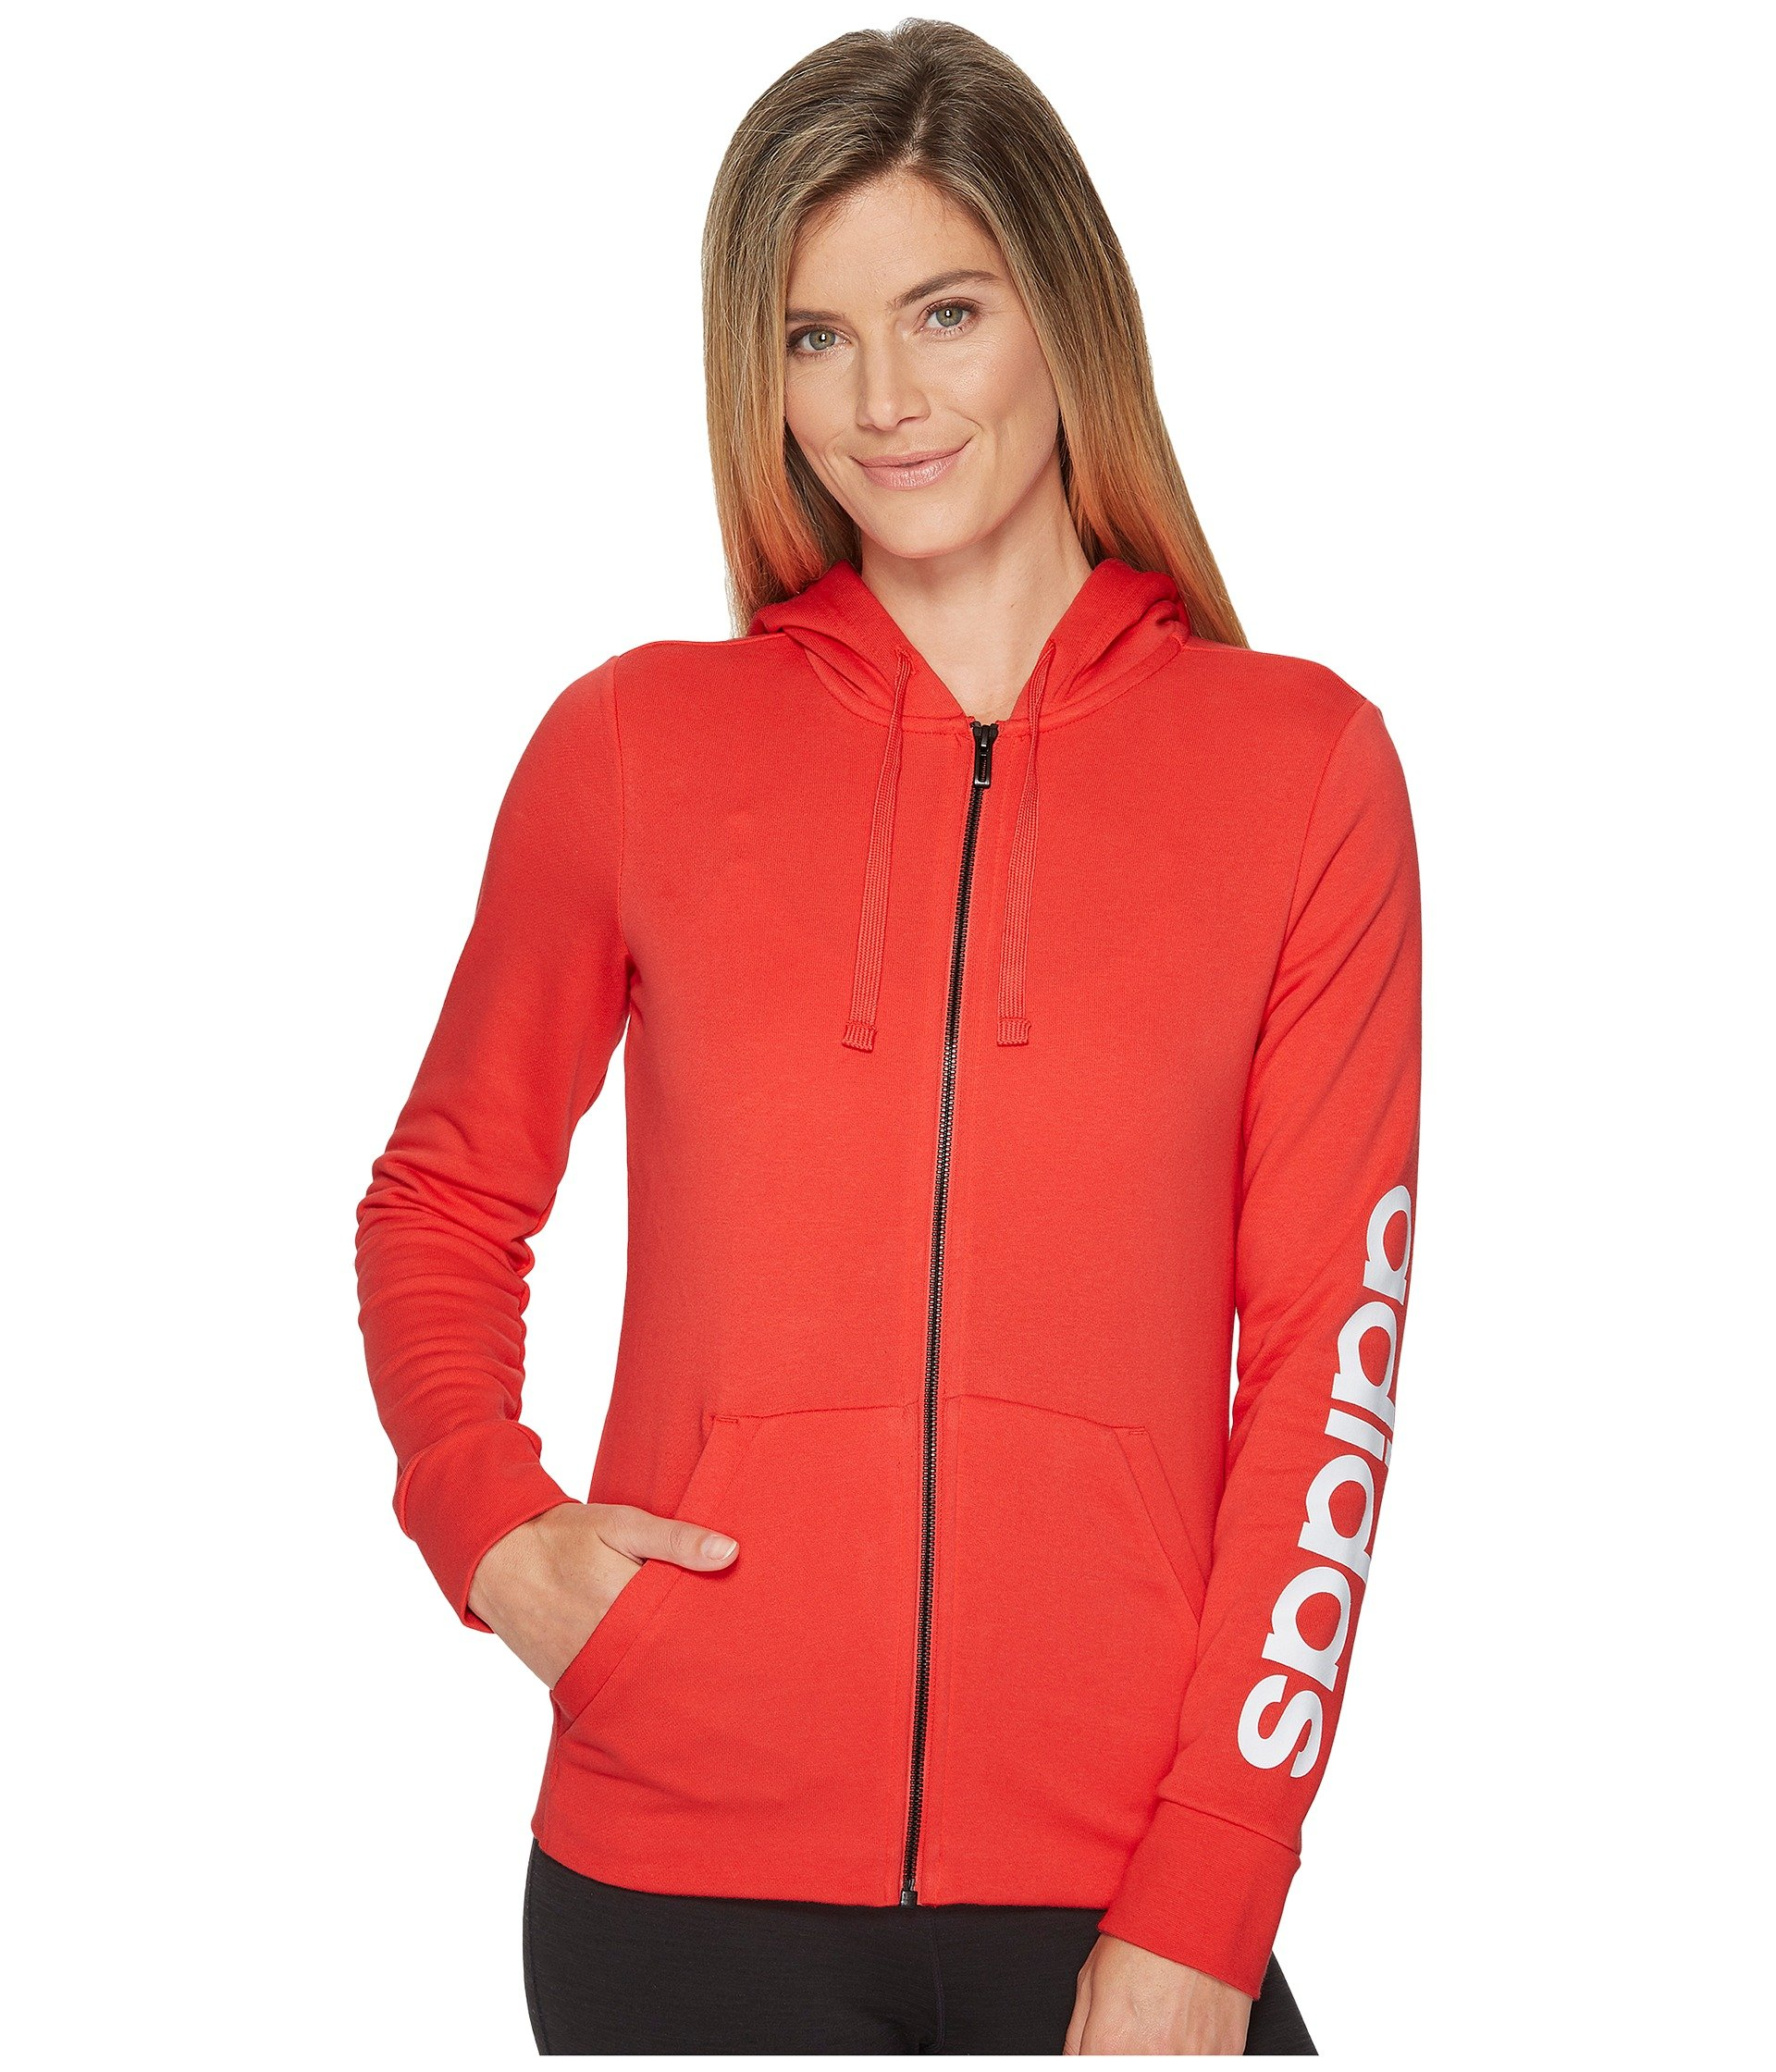 adidas Women's Essentials Linear Full Zip Fleece Hoodie, Real Coral/White, X-Small by adidas